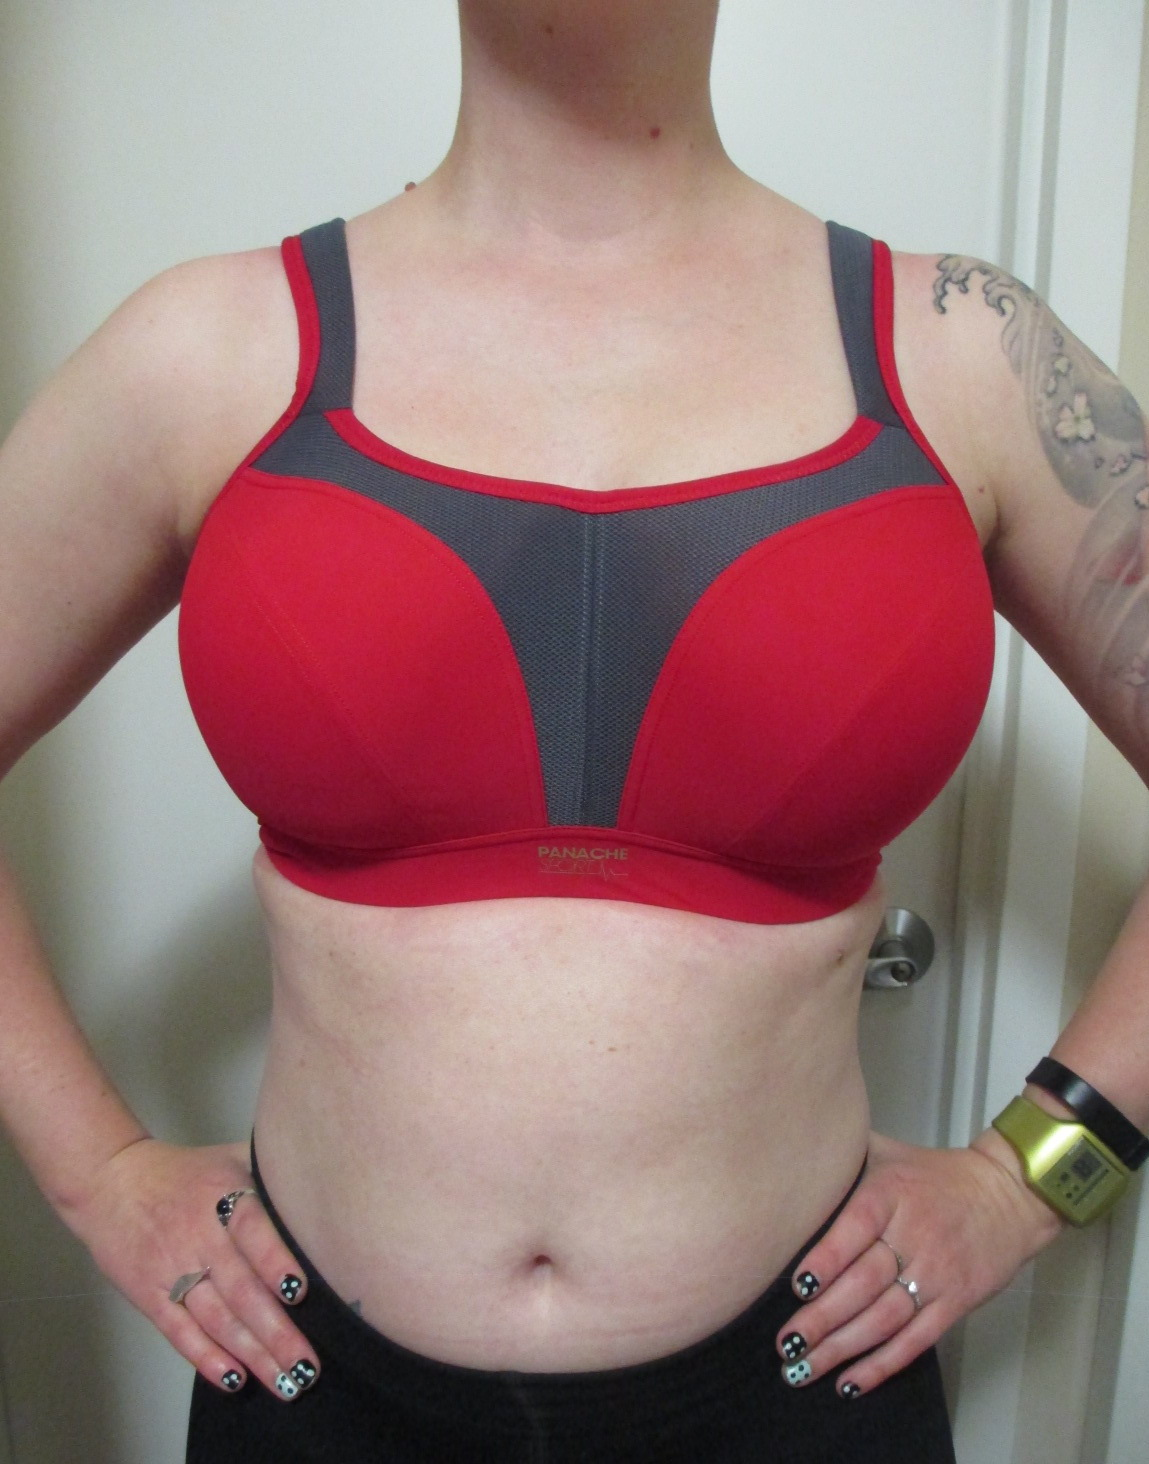 51218e0b0f Lorna Jane solstice sports bra review. IMG 1309.jpg